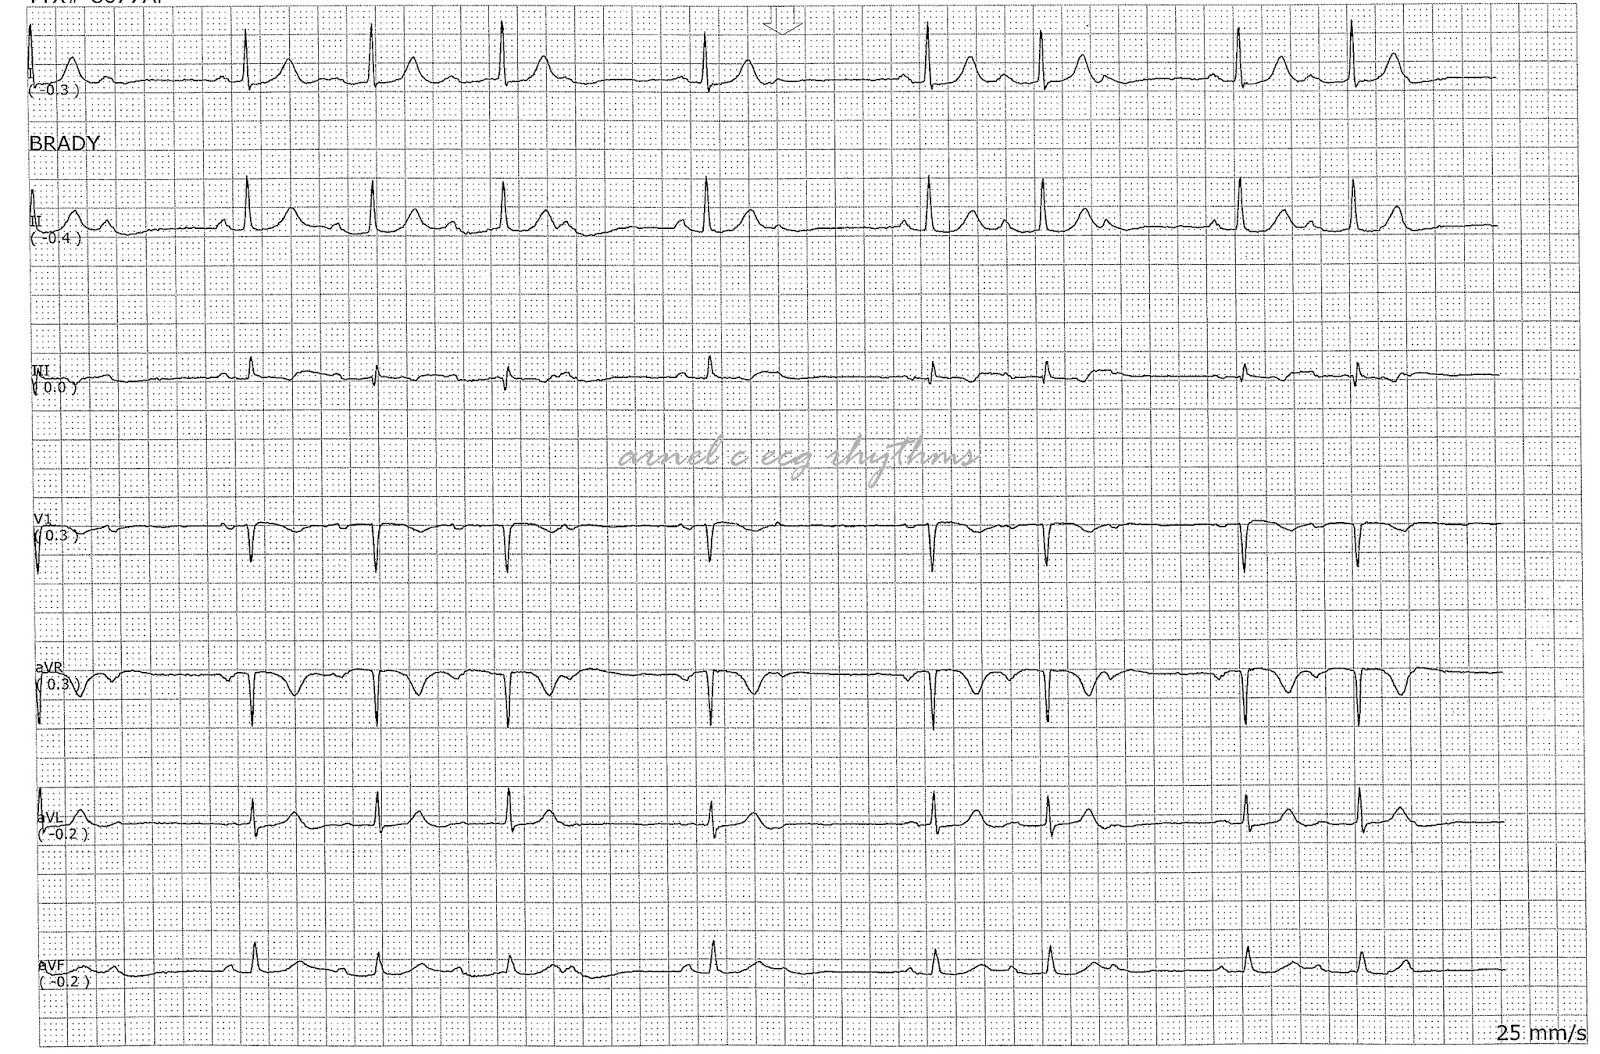 Ecg Rhythms Mobitz I With Wrong Lead Placement